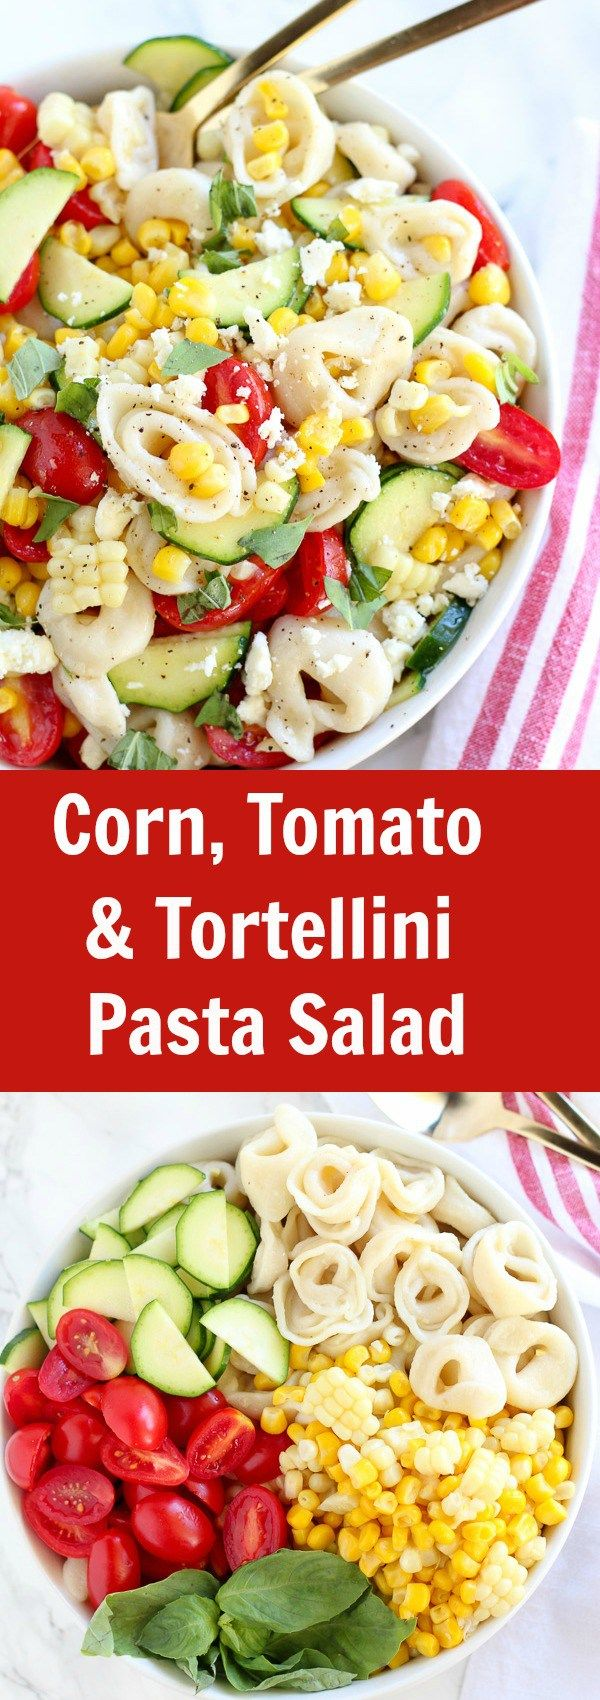 ... salads on Pinterest | Cold dinner ideas, Cheese tortellini salad and